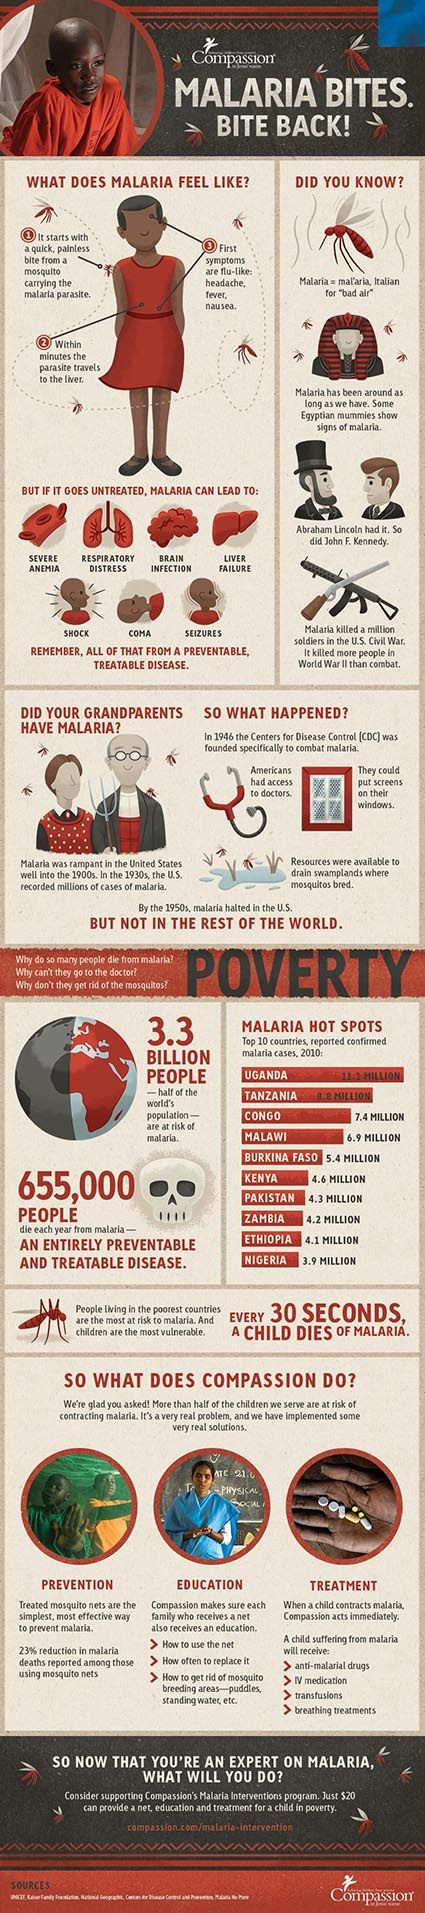 Malaria Bites! Bite Back. Check out this info-graphic from Compassion International and educate yourself about this life threatening disease. #DefeatMalaria #WorldMalariaDay #Uganda